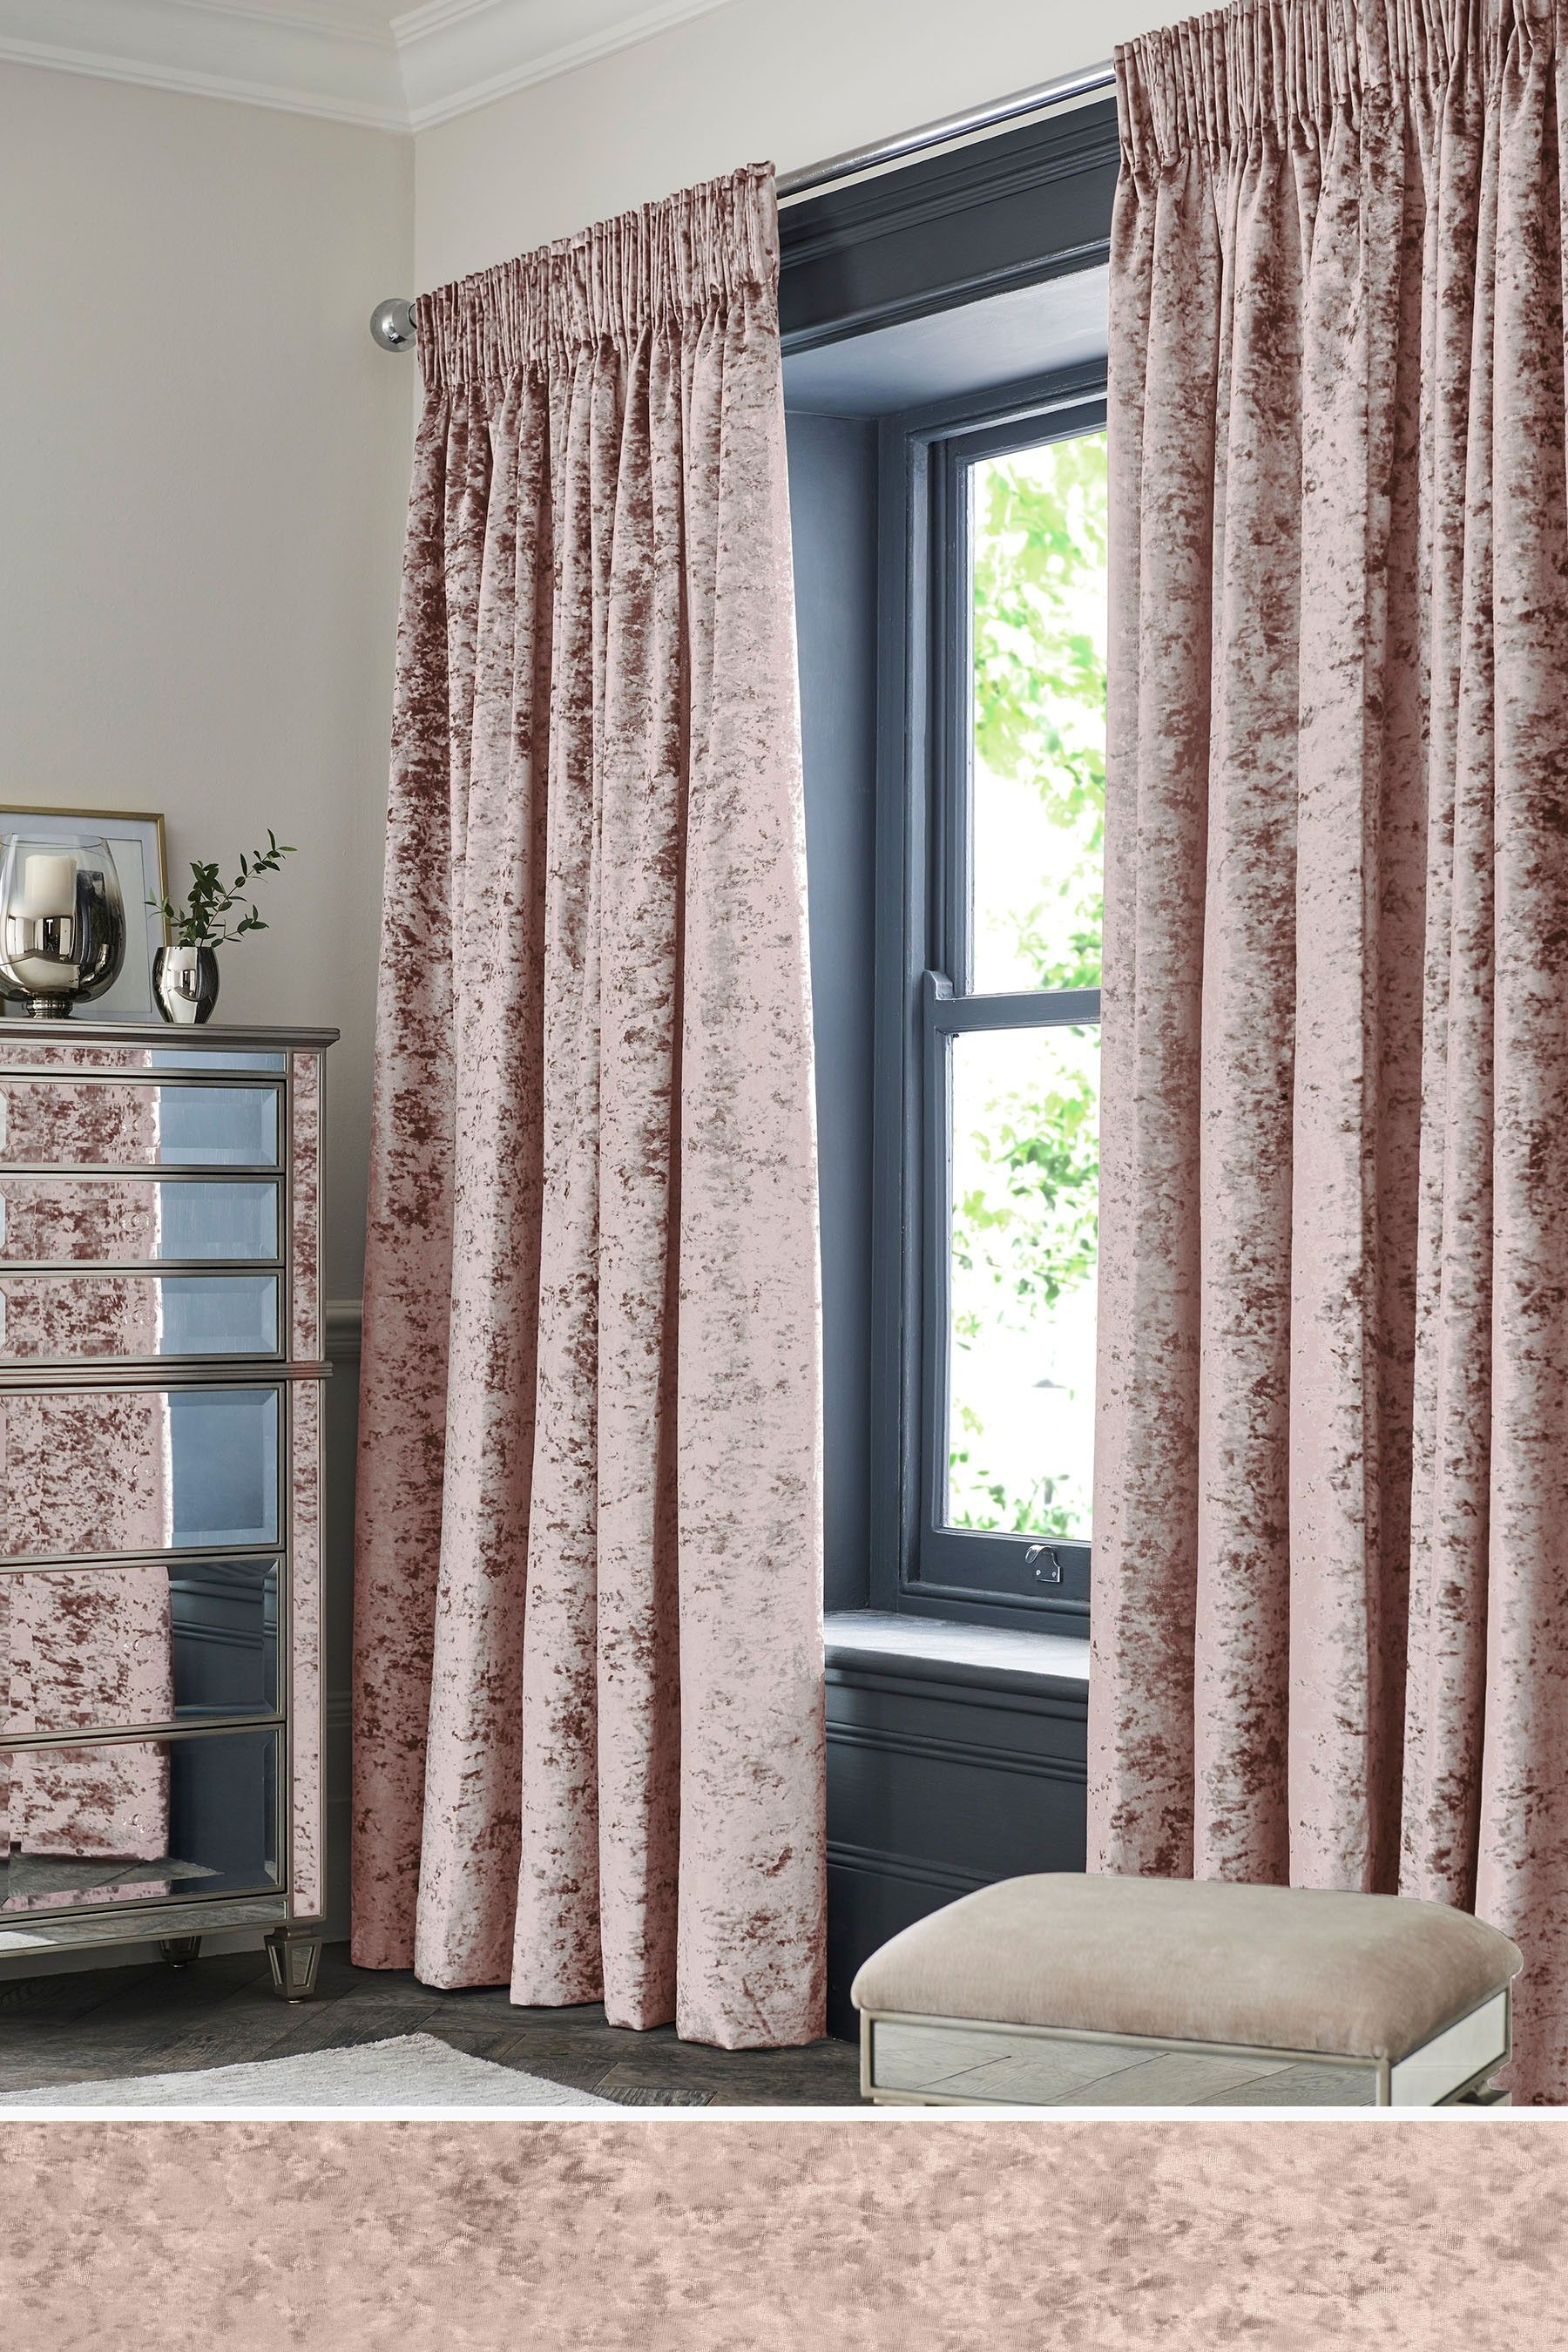 Next Crushed Velvet Pencil Pleat Lined Curtains Pink Drapes Curtains Living Room Pink Velvet Curtains Velvet Living Room